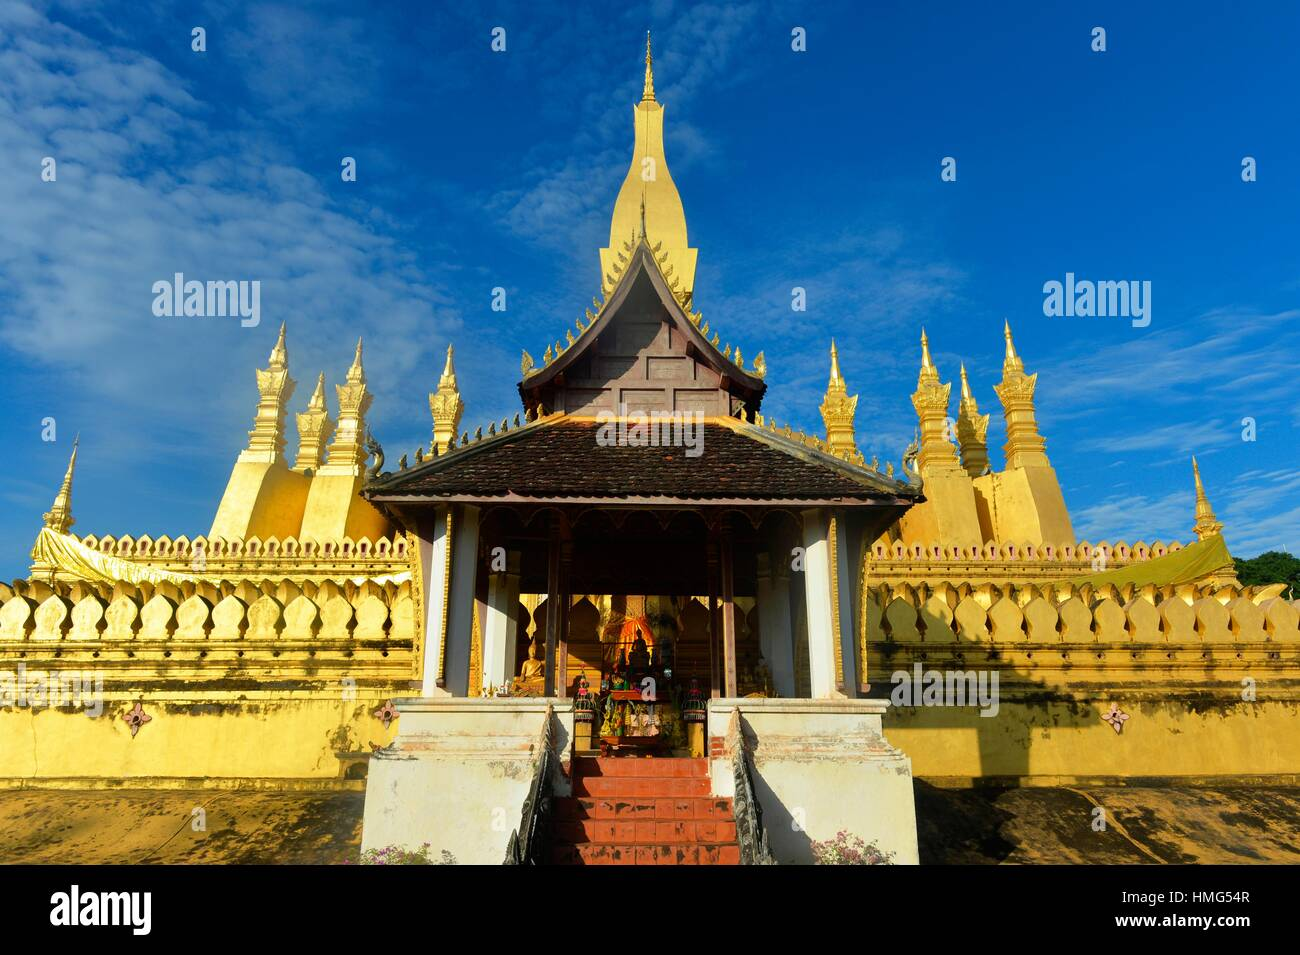 Pha That Luang temple in Vientiane, Laos, South East Asia. - Stock Image